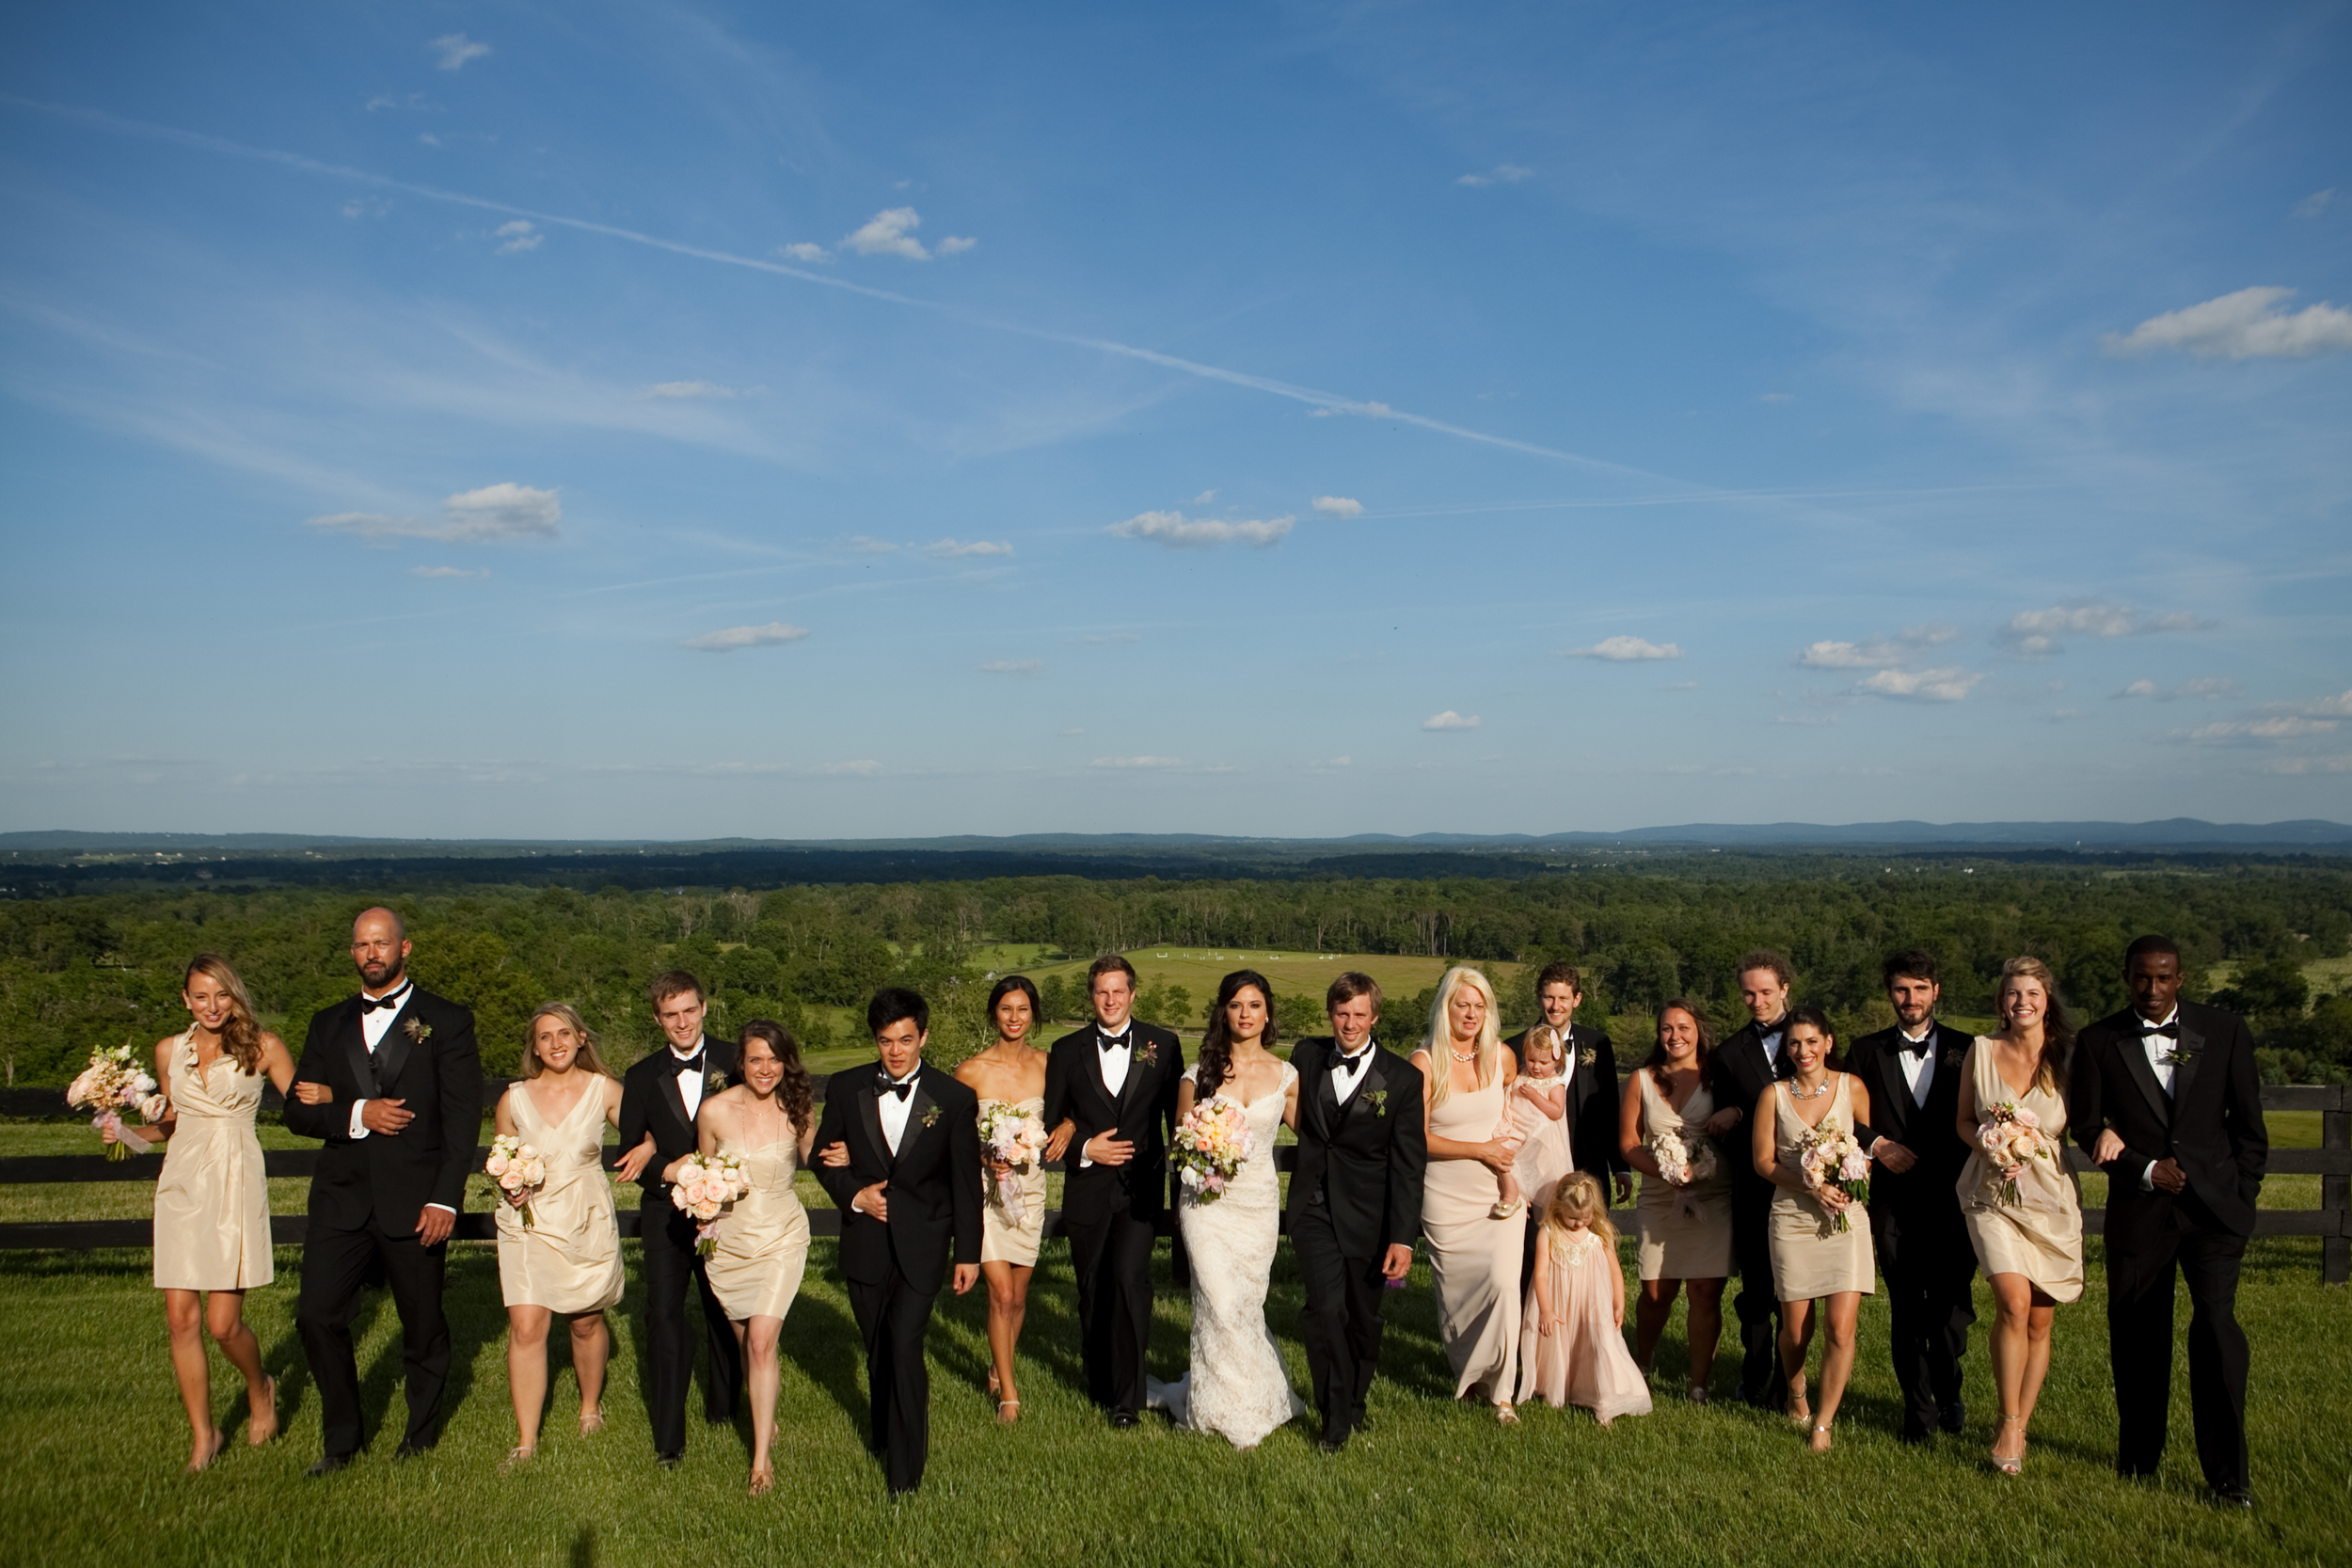 weddings_at_highholdborne_view